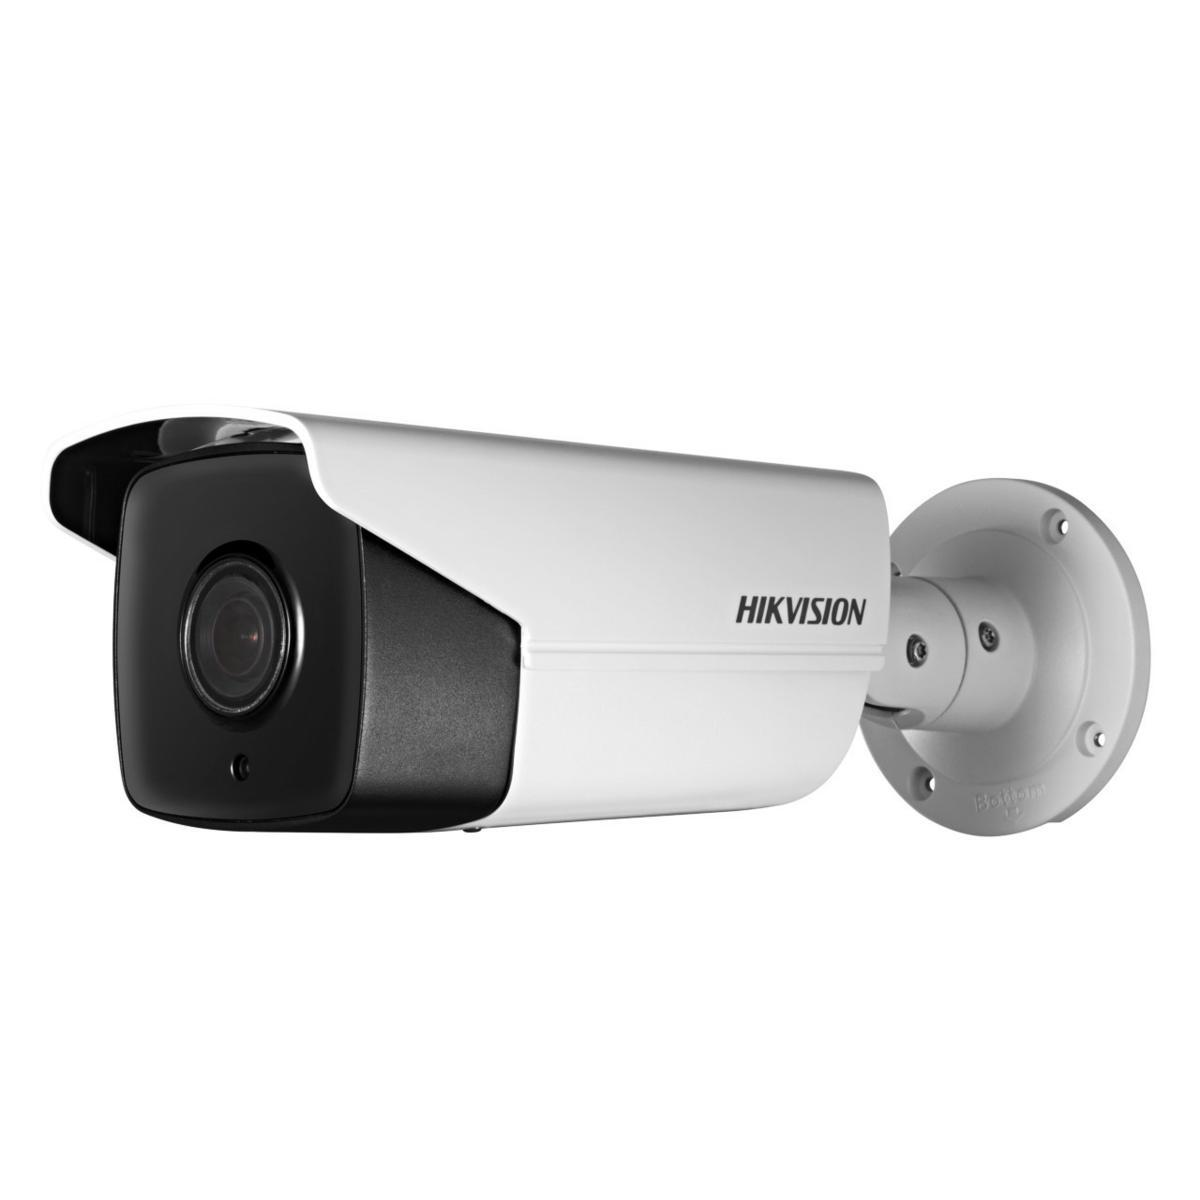 SICE Distributore Ufficiale  TELECAMERE IP TLC Bullet IP camera 2Mpx 6mm 1/3 CMOS IR 50m WDR | DS-2CD2T22WD-I56